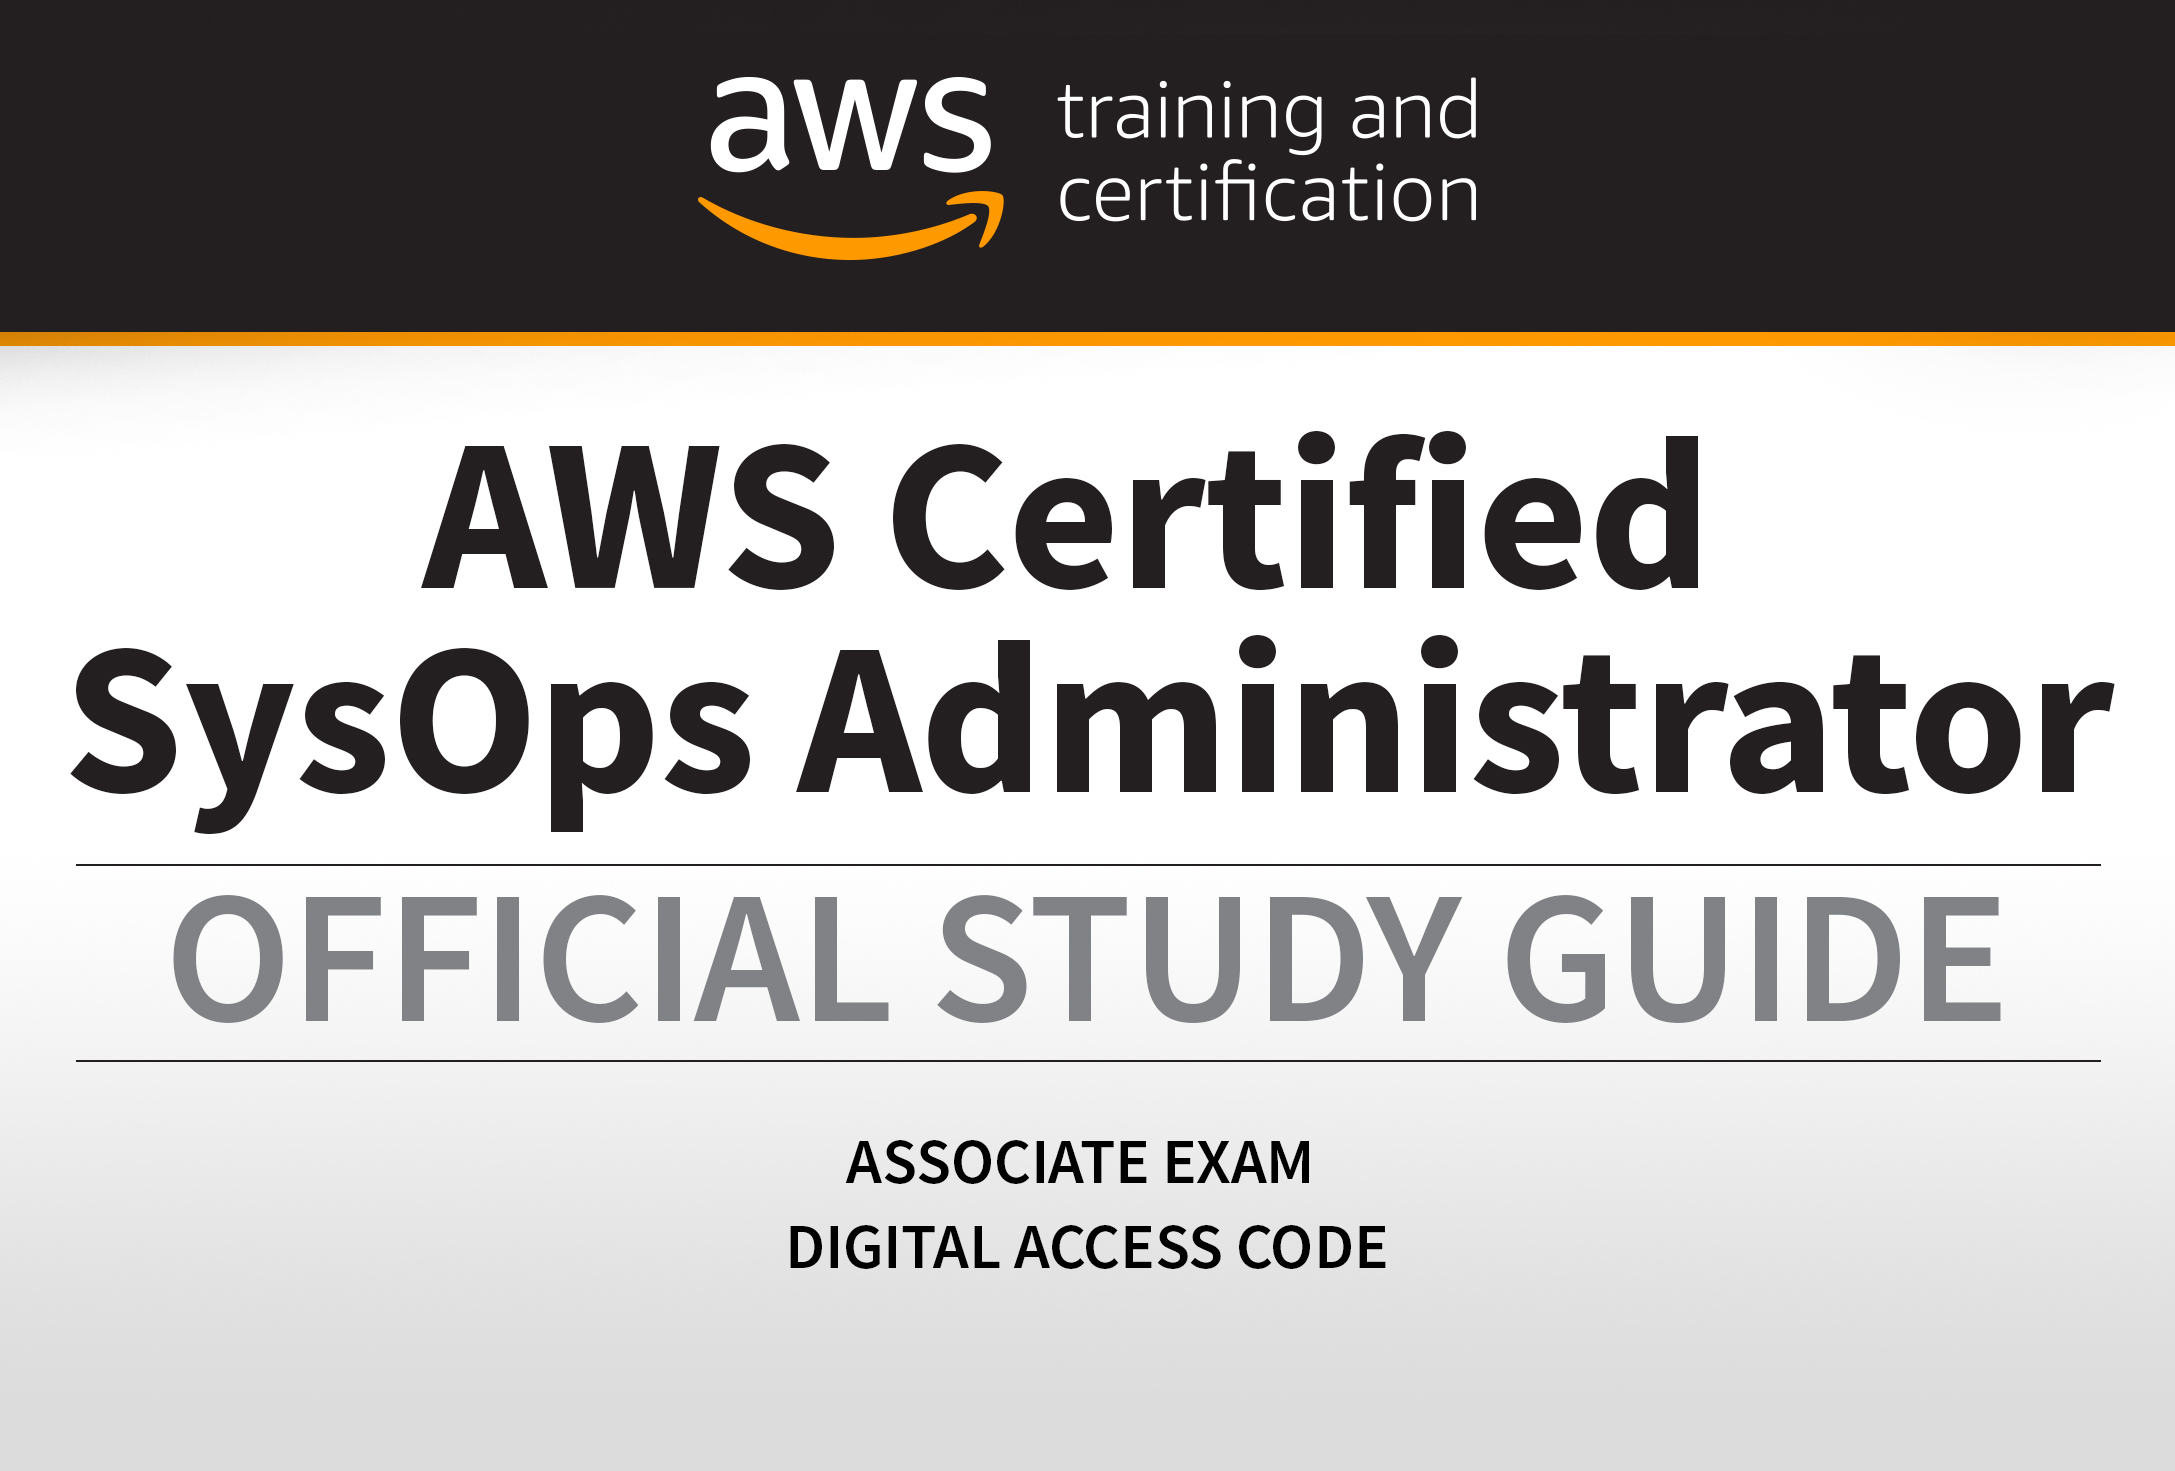 Aws Certified Sysops Administrator Official Study Guide Test Banks